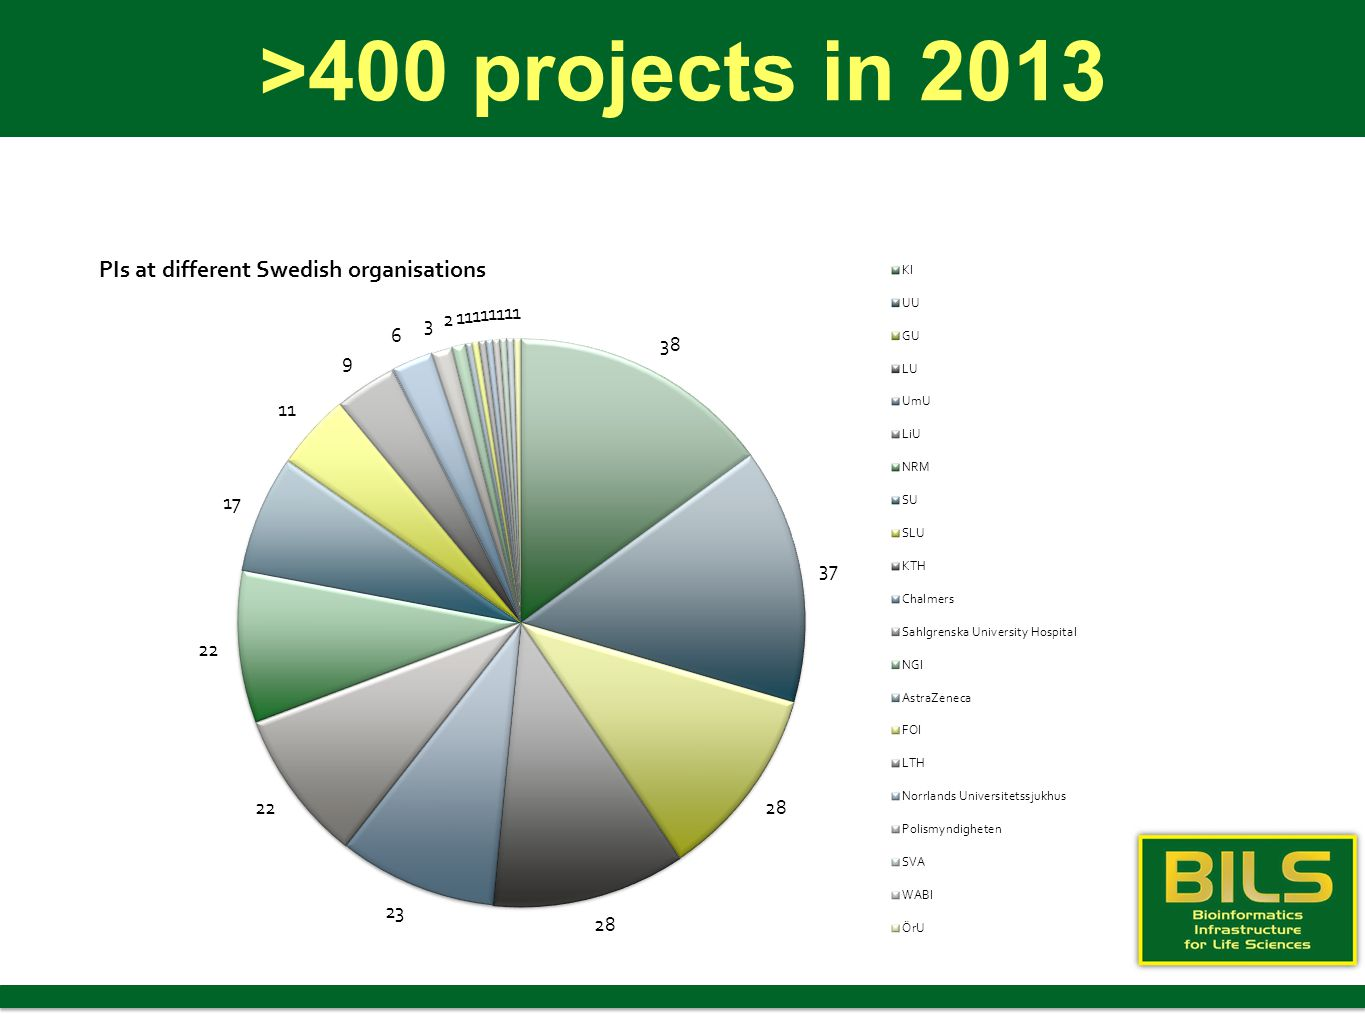 >400 projects in 2013